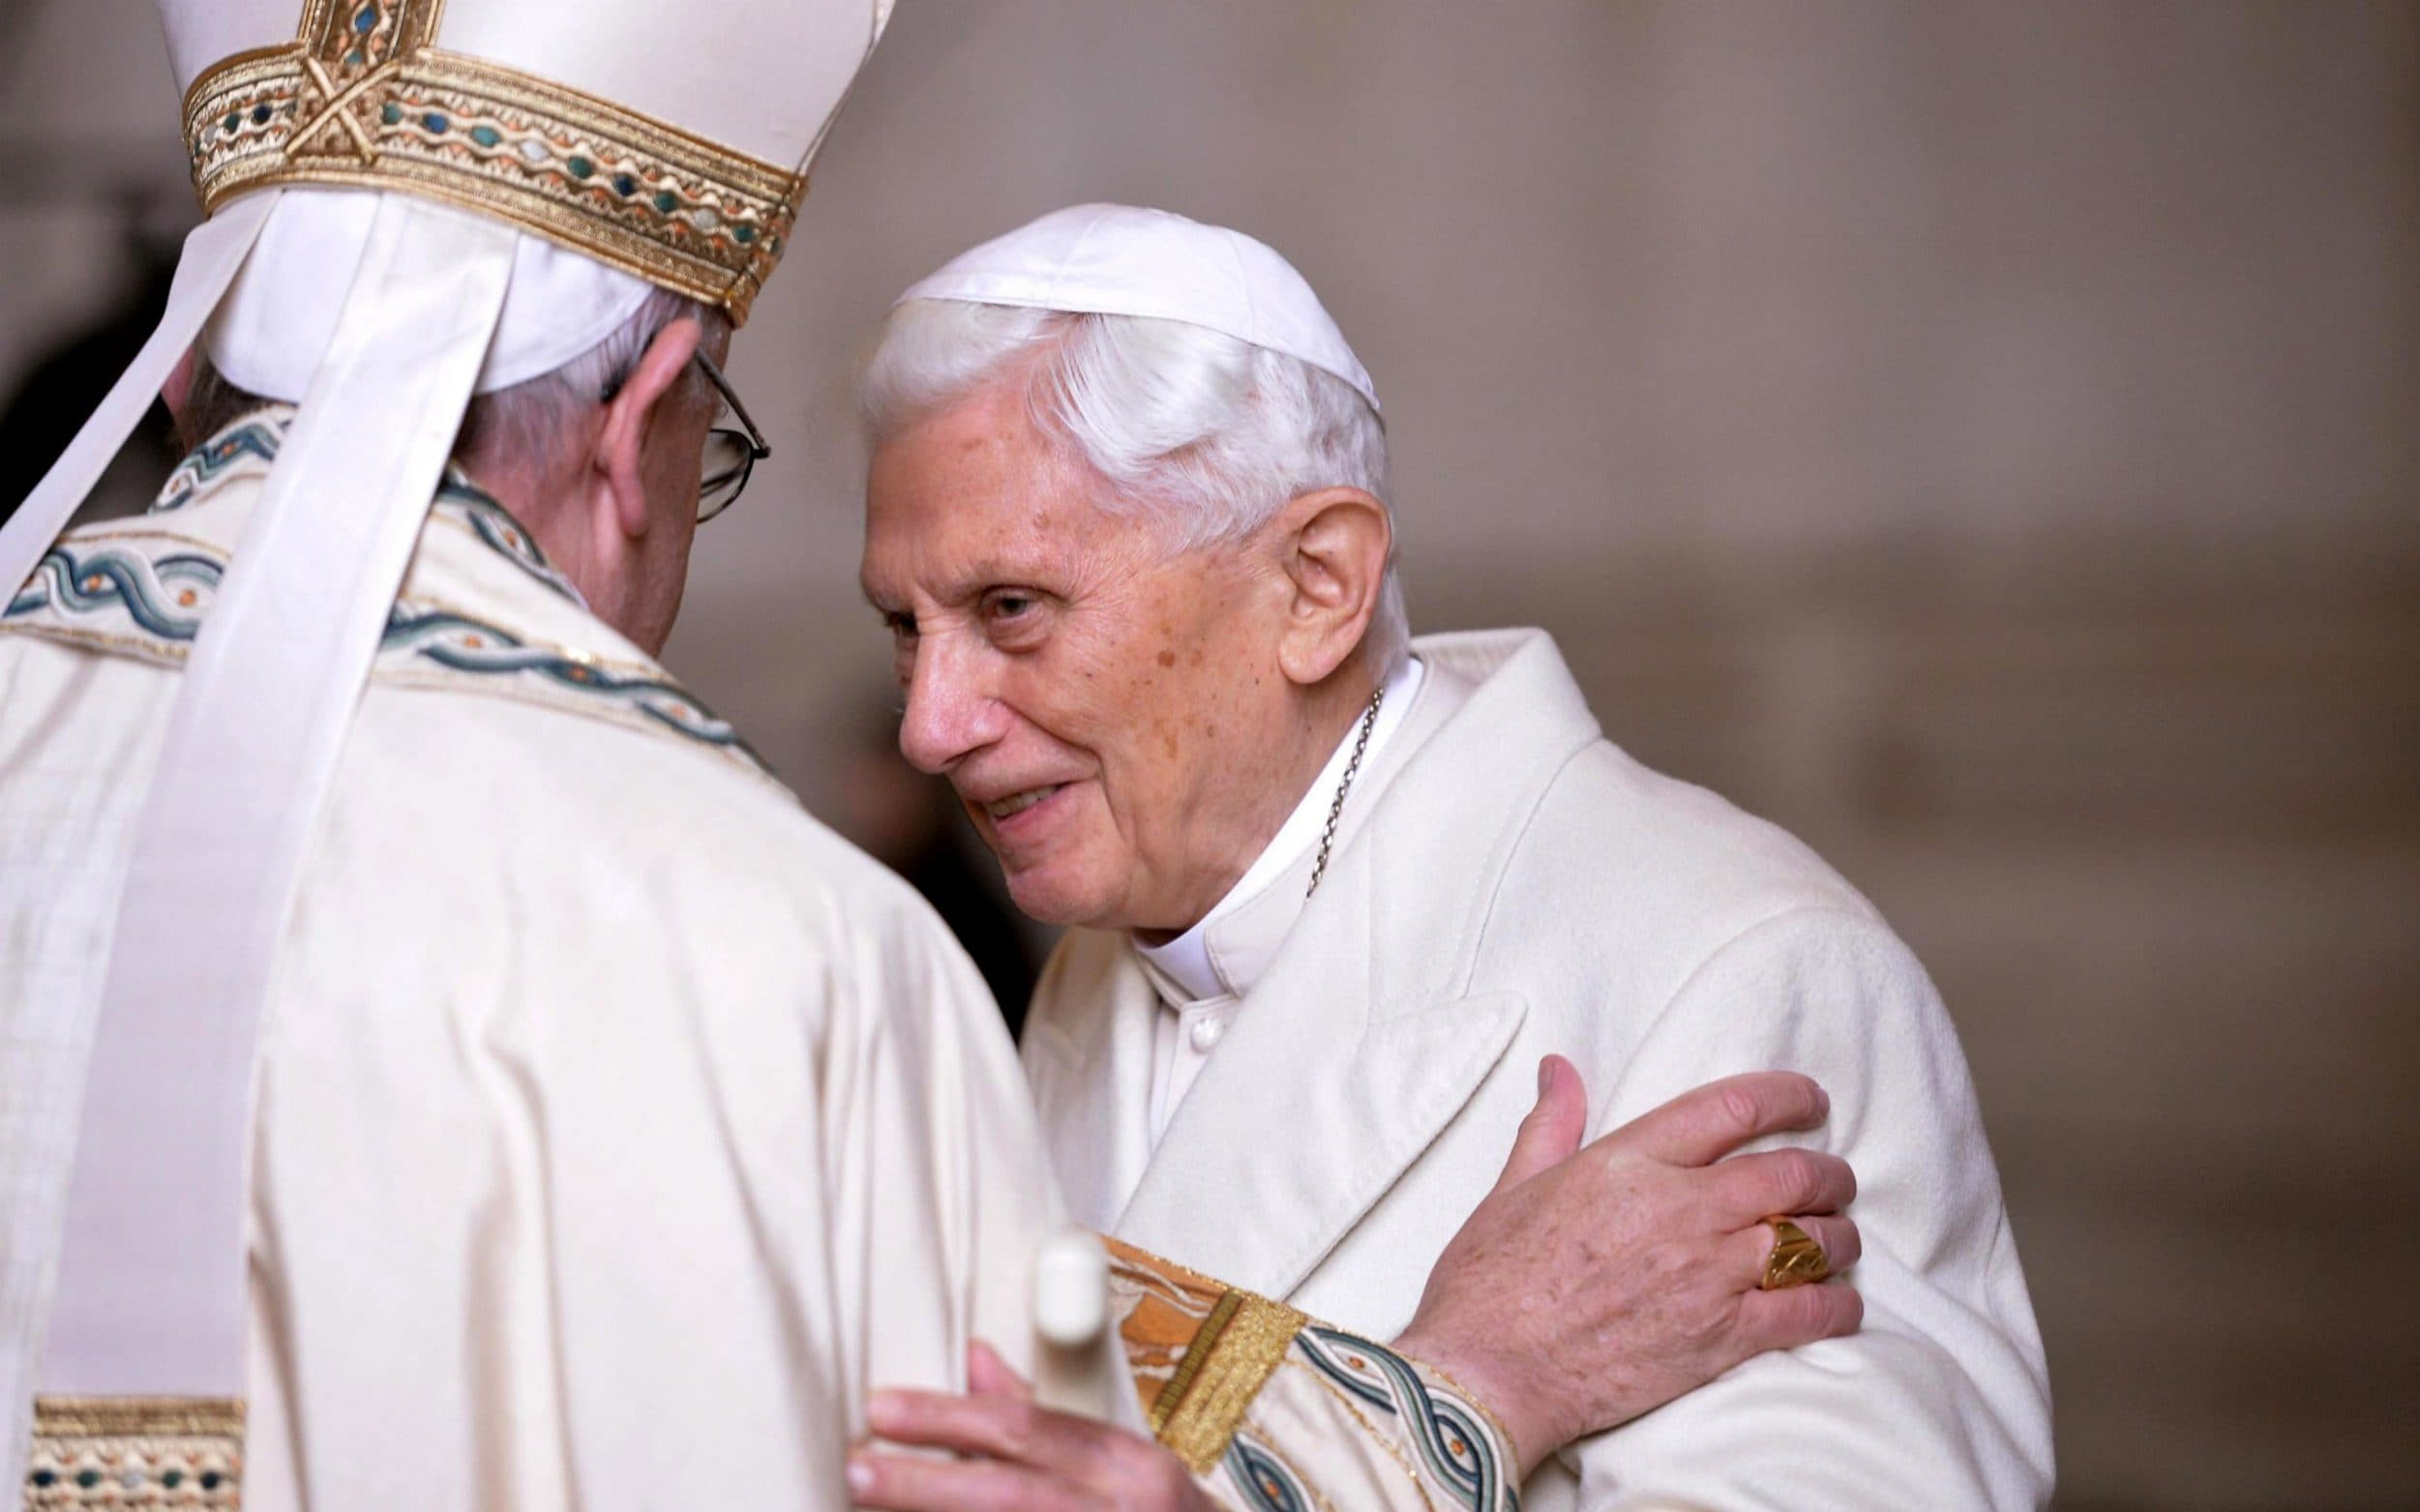 Pope Benedict demands his name is taken off controversial new book criticising current Pope Francis